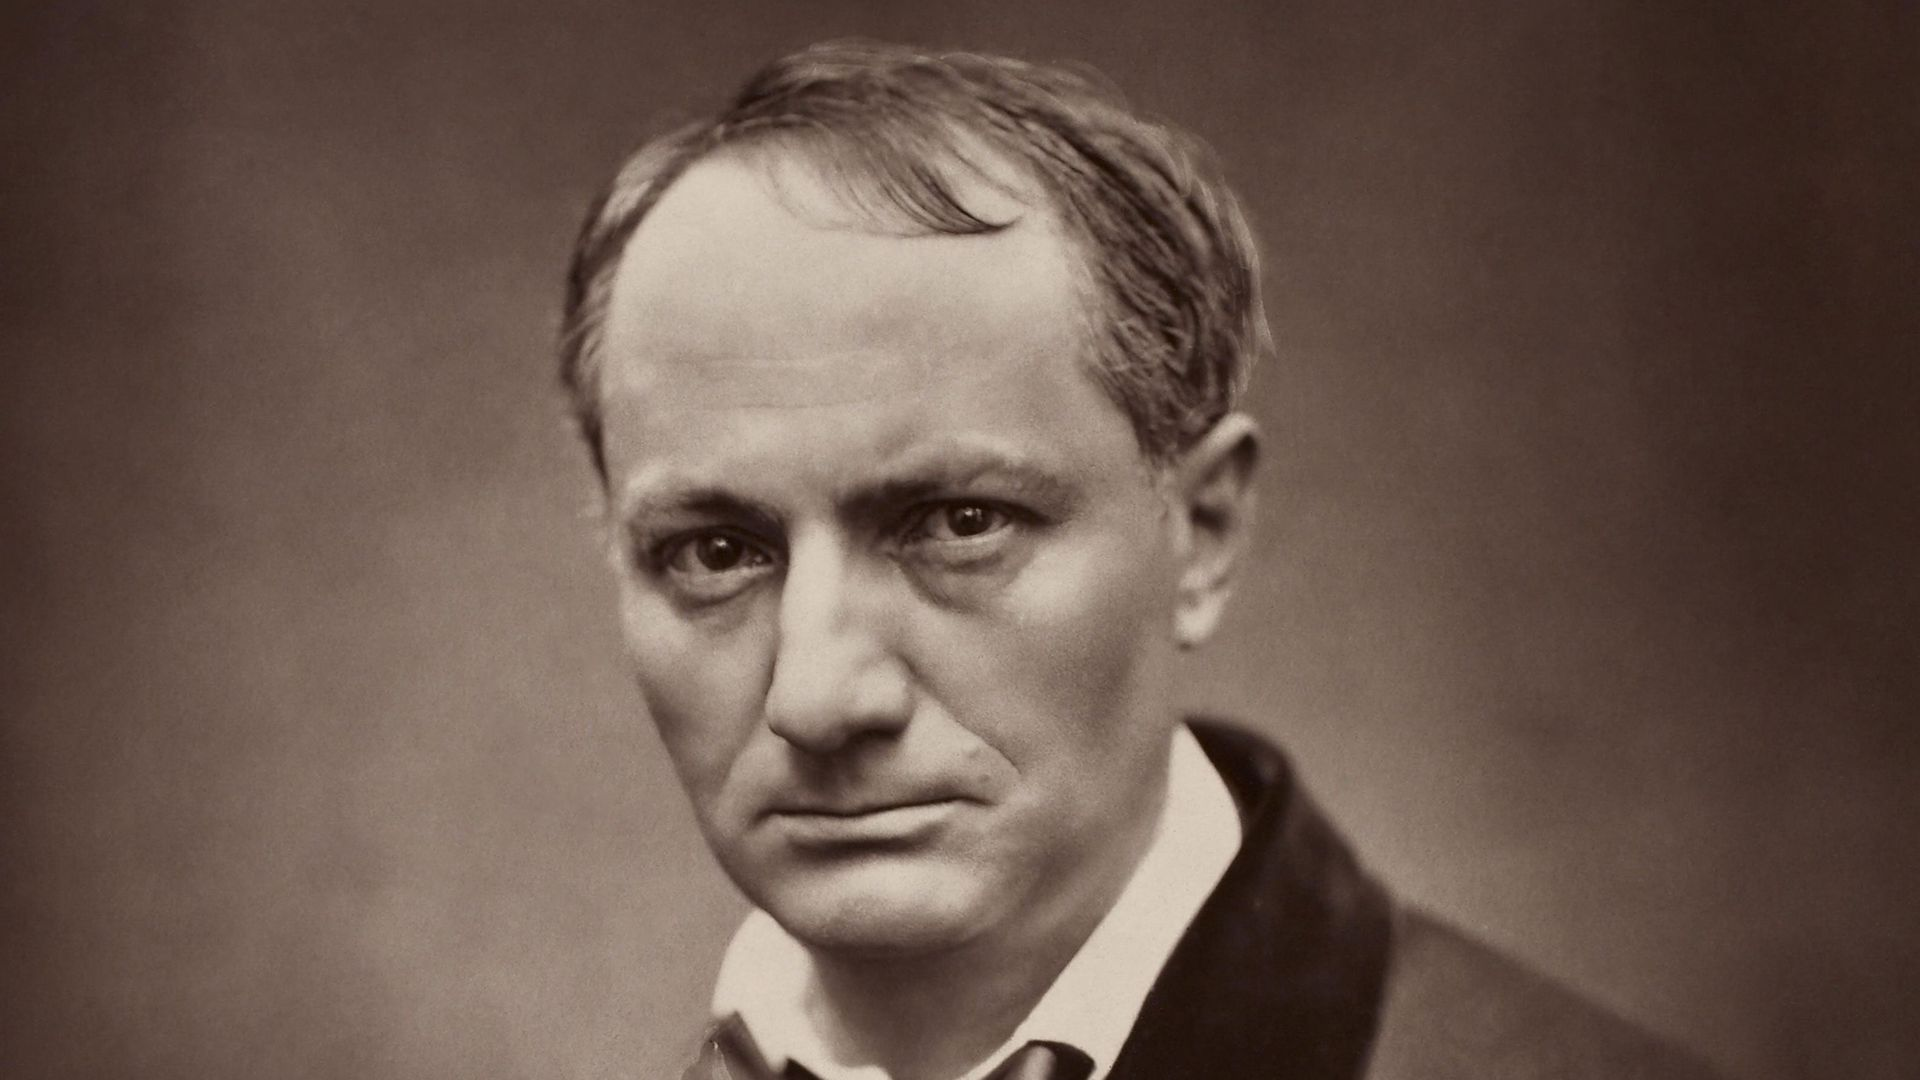 Charles Baudelaire in Etienne Carjat's portrait, from 1862 - Credit: Universal Images Group via Getty